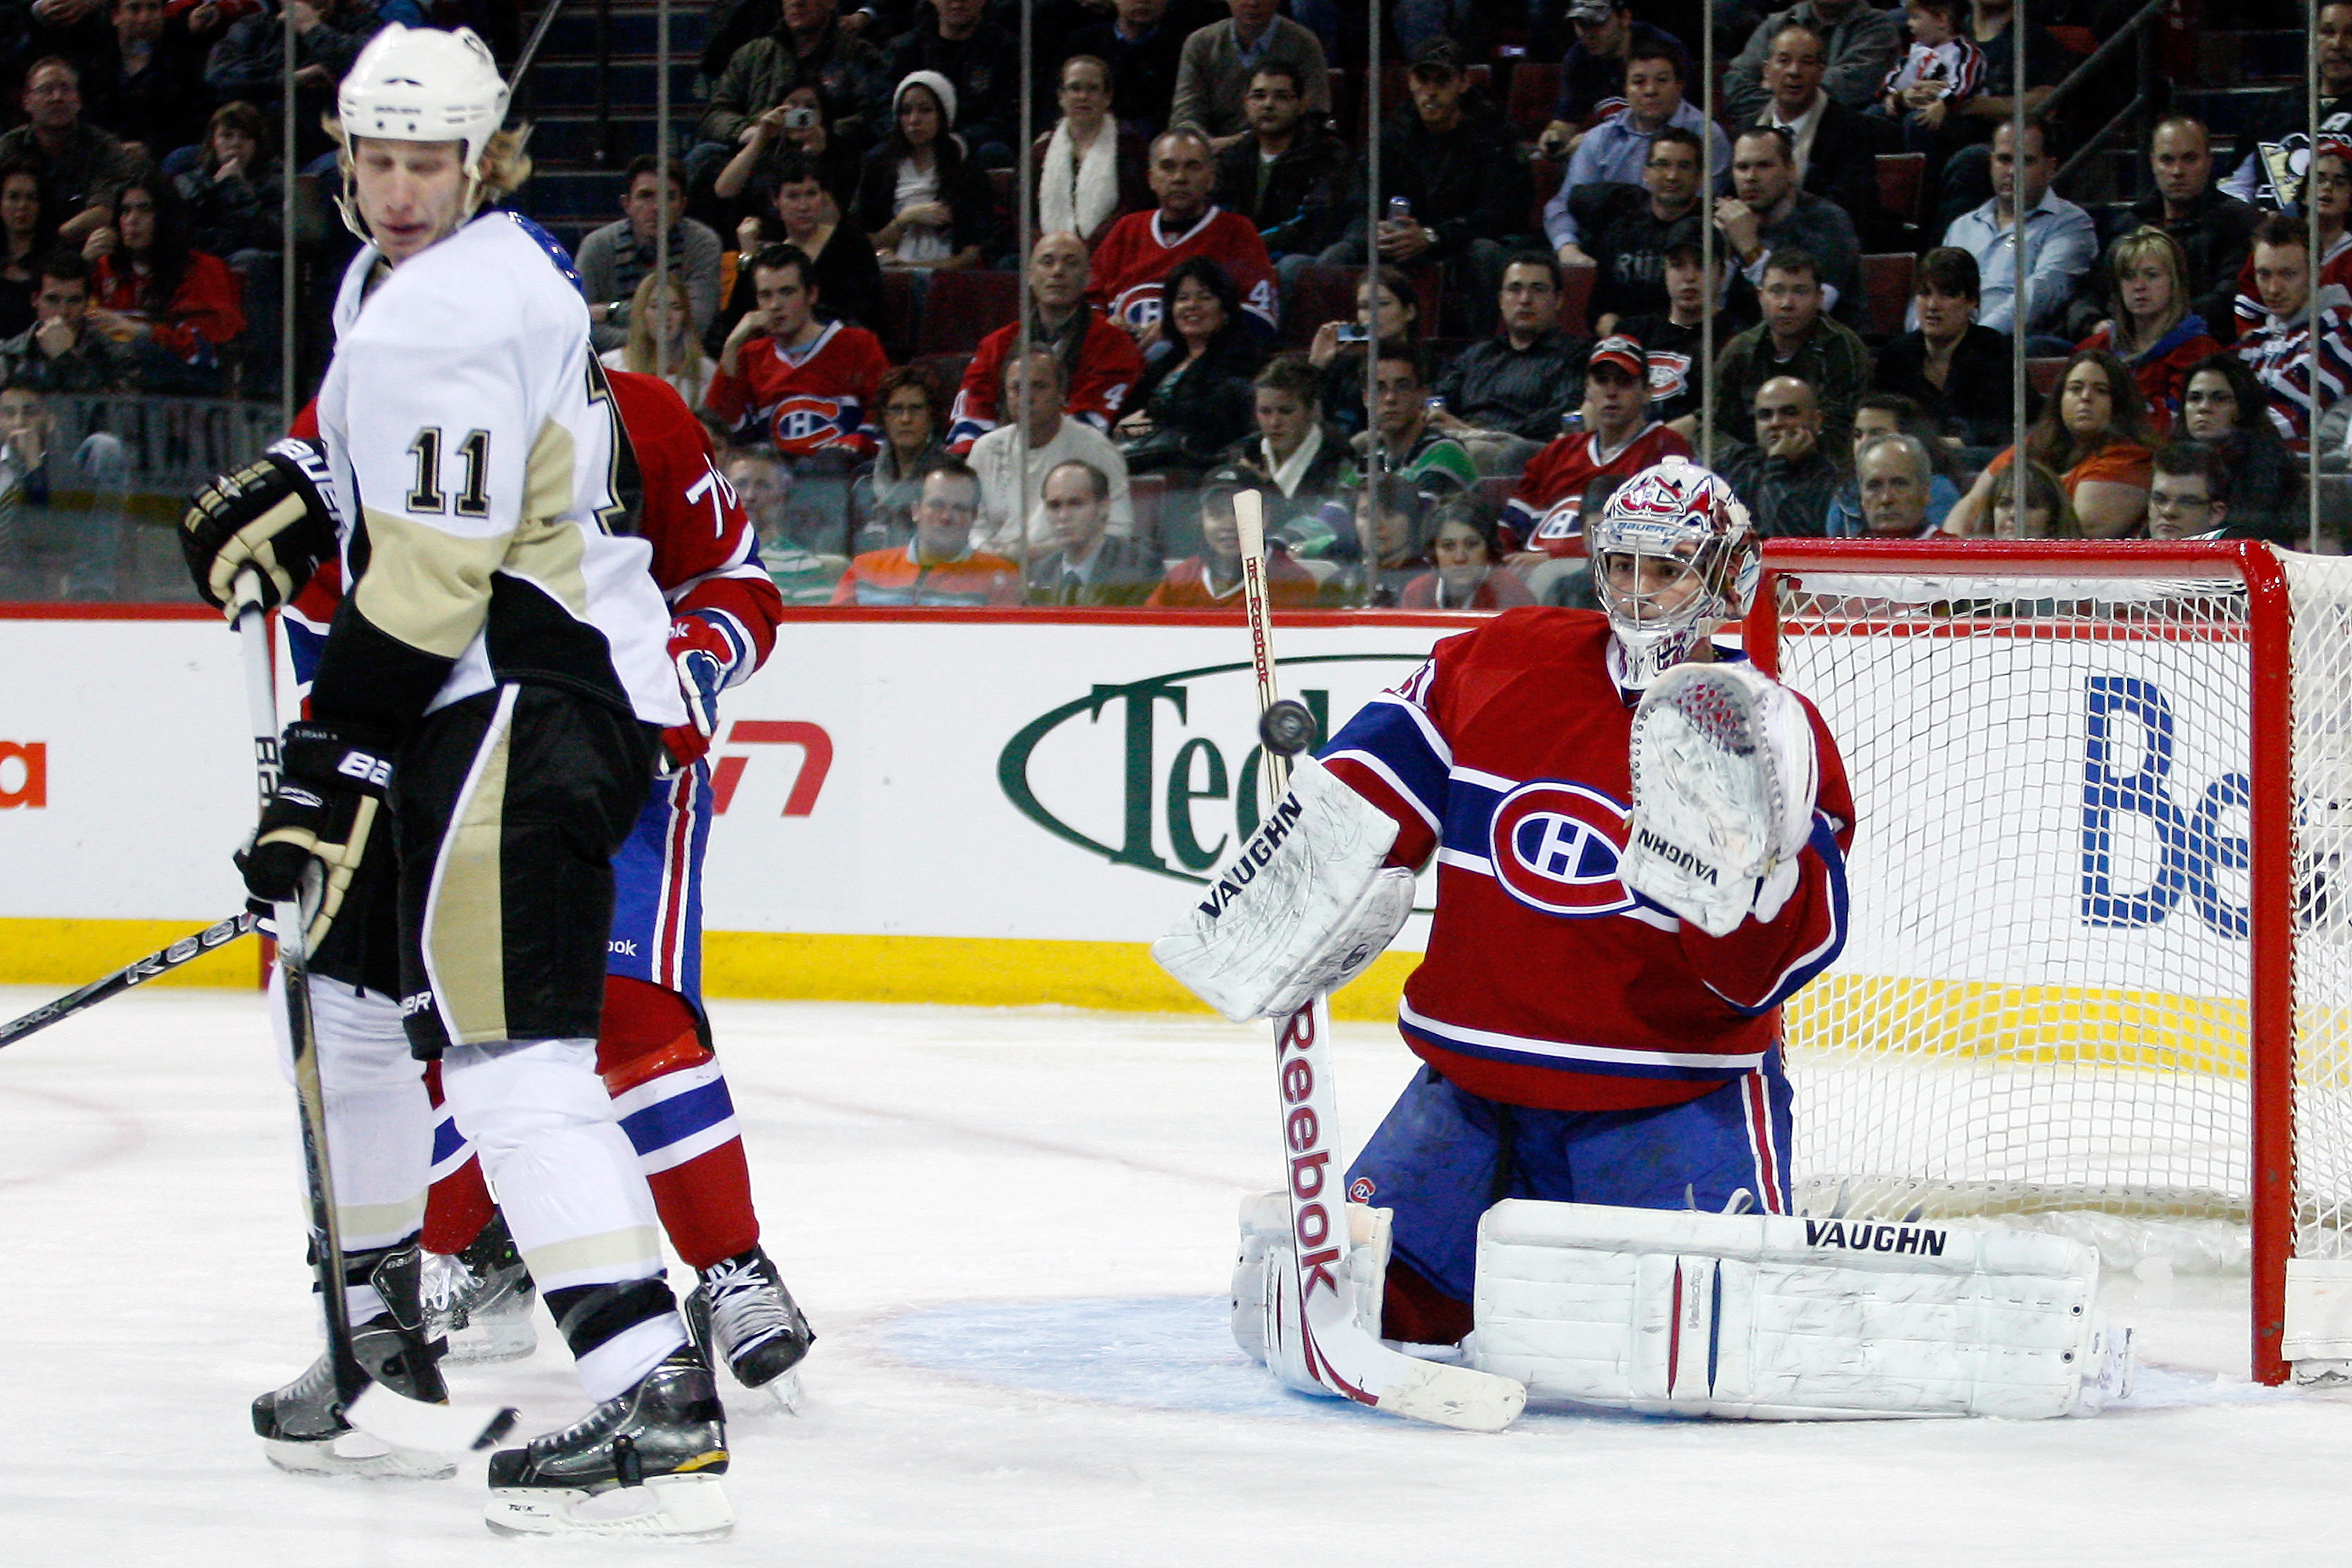 MONTREAL, CANADA - JANUARY 12:  Carey Price #31 of the Montreal Canadiens makes a glove save on the deflected puck by Jordan Staal #11 of the Pittsburgh Penguins during the NHL game at the Bell Centre on January 12, 2011 in Montreal, Quebec, Canada.  The